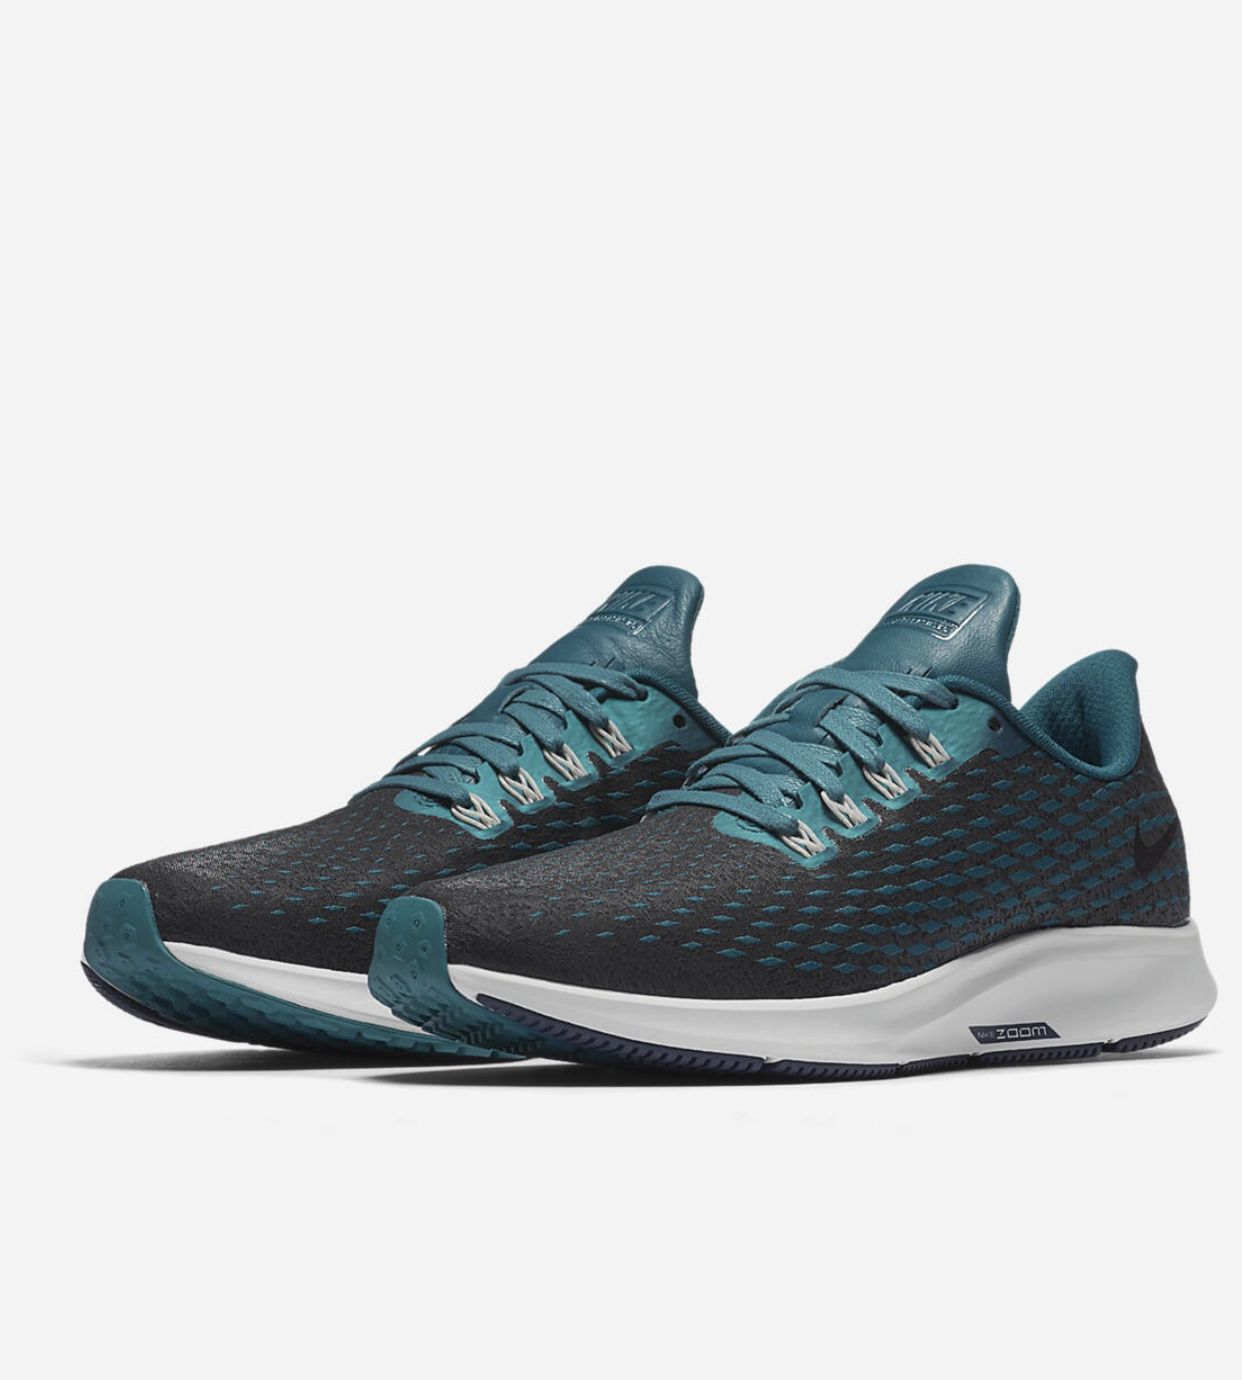 5da815da3260 Nike Air Zoom Pegasus 35 Premium- Geode Teal Light Silver Midnight Spruce